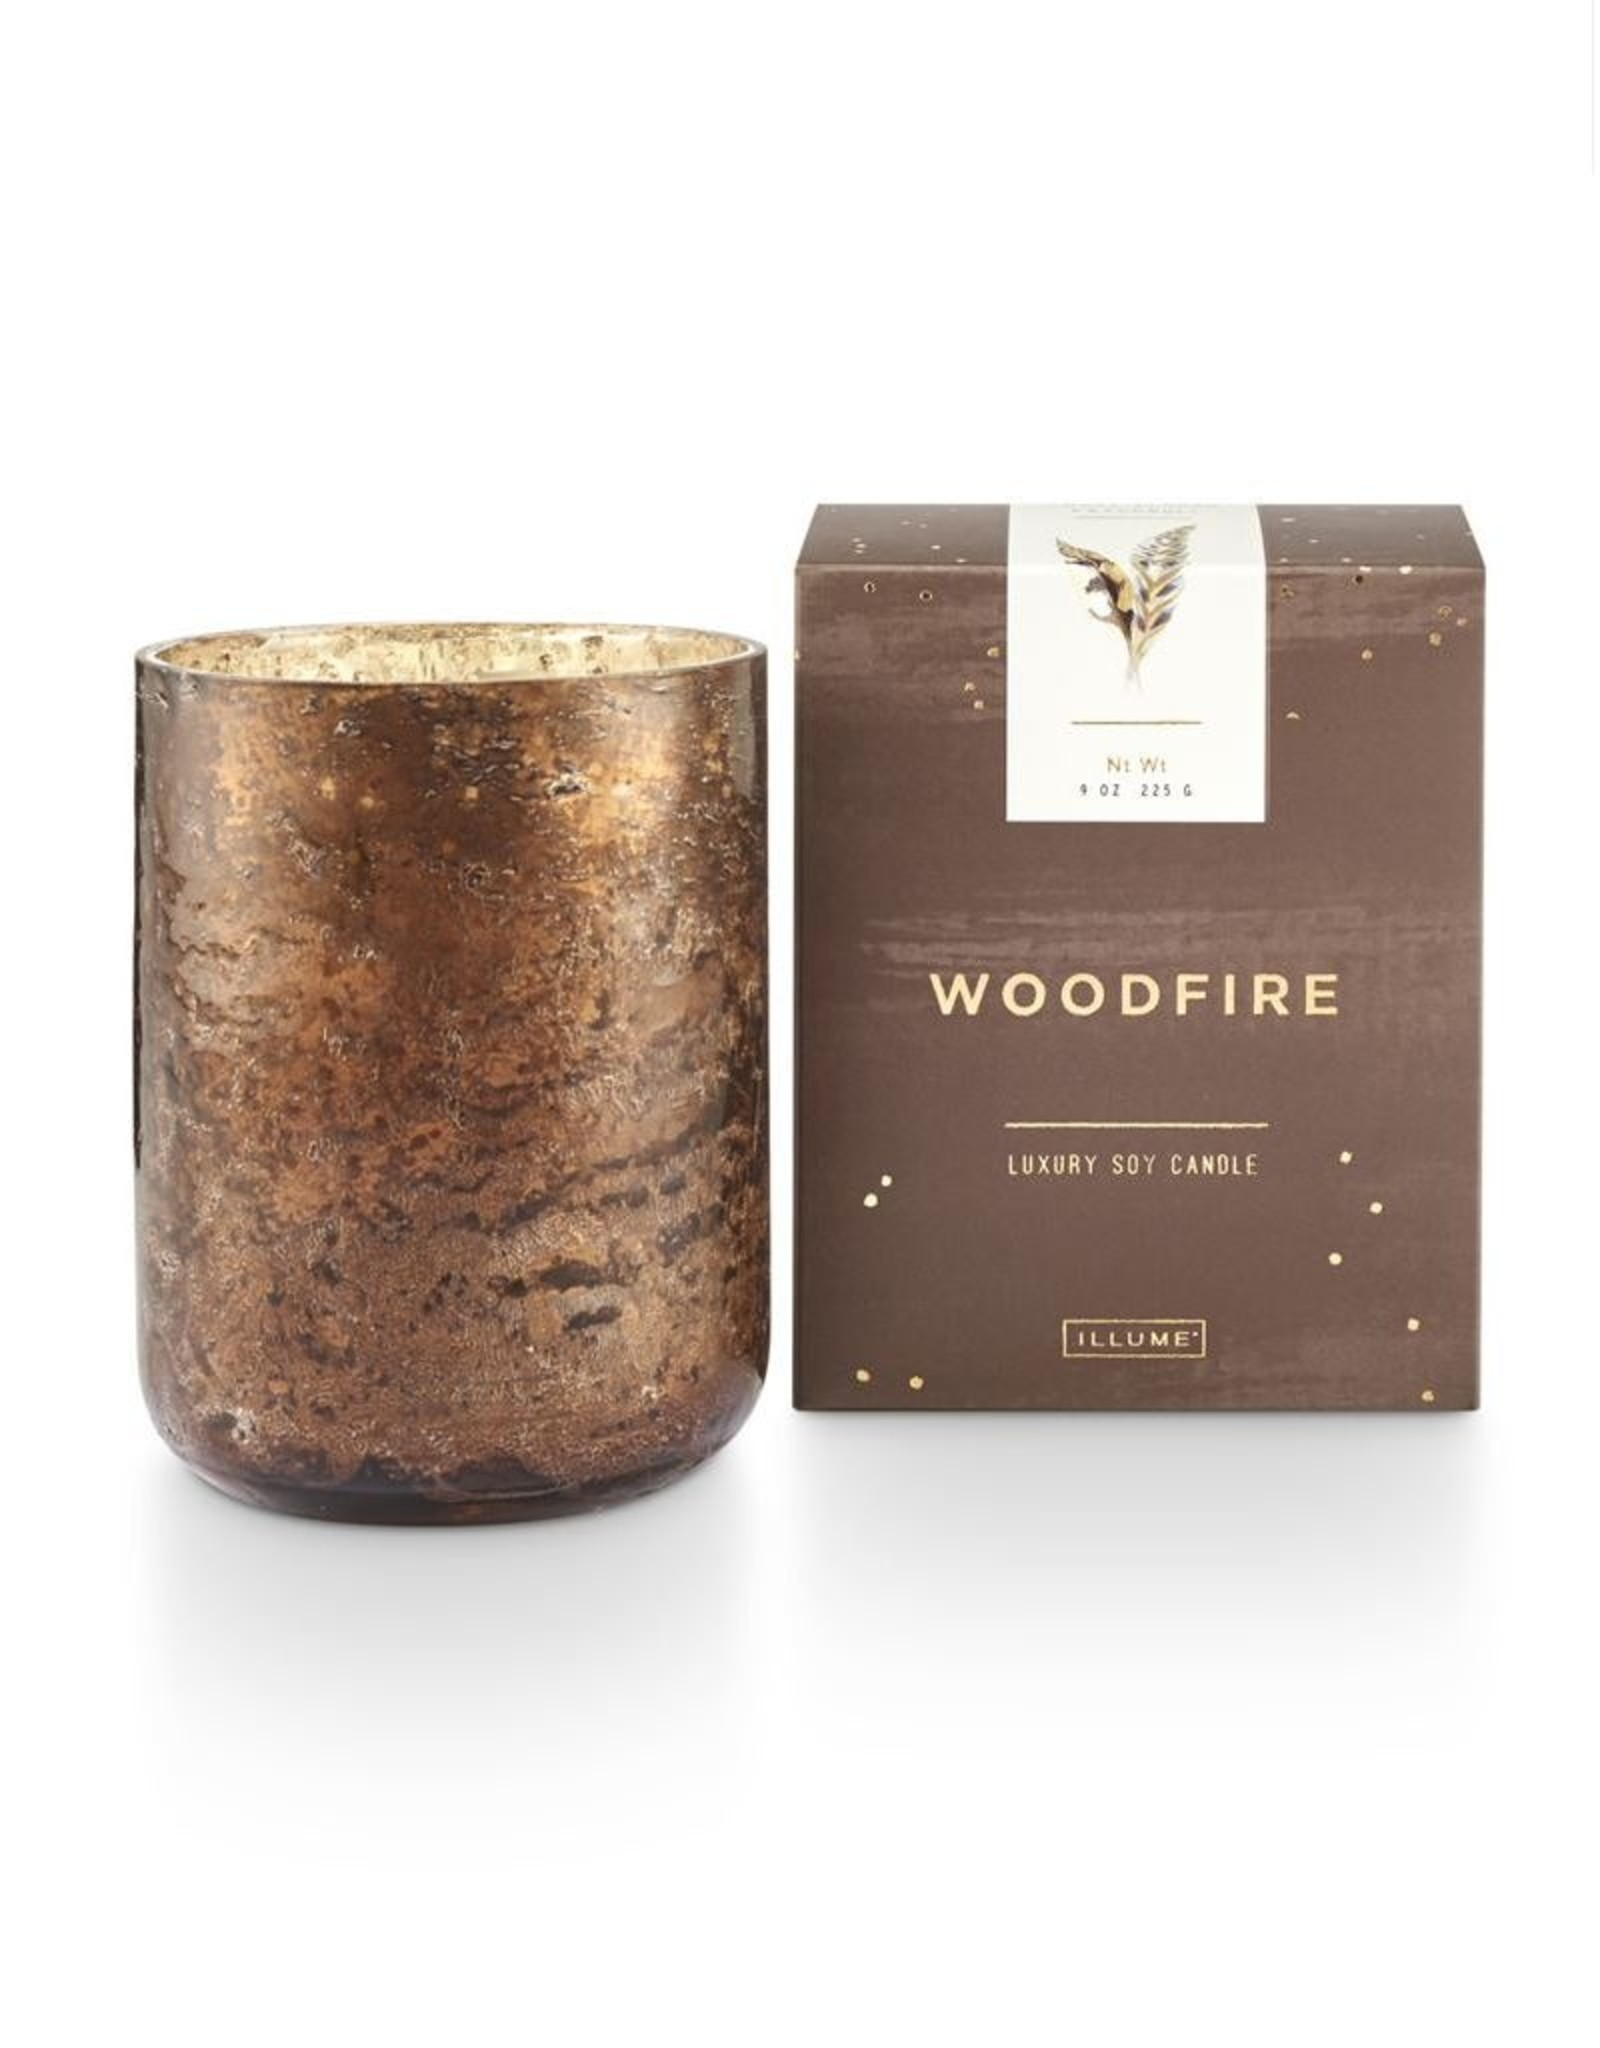 Illume Woodfire Small Boxed Luxe Candle